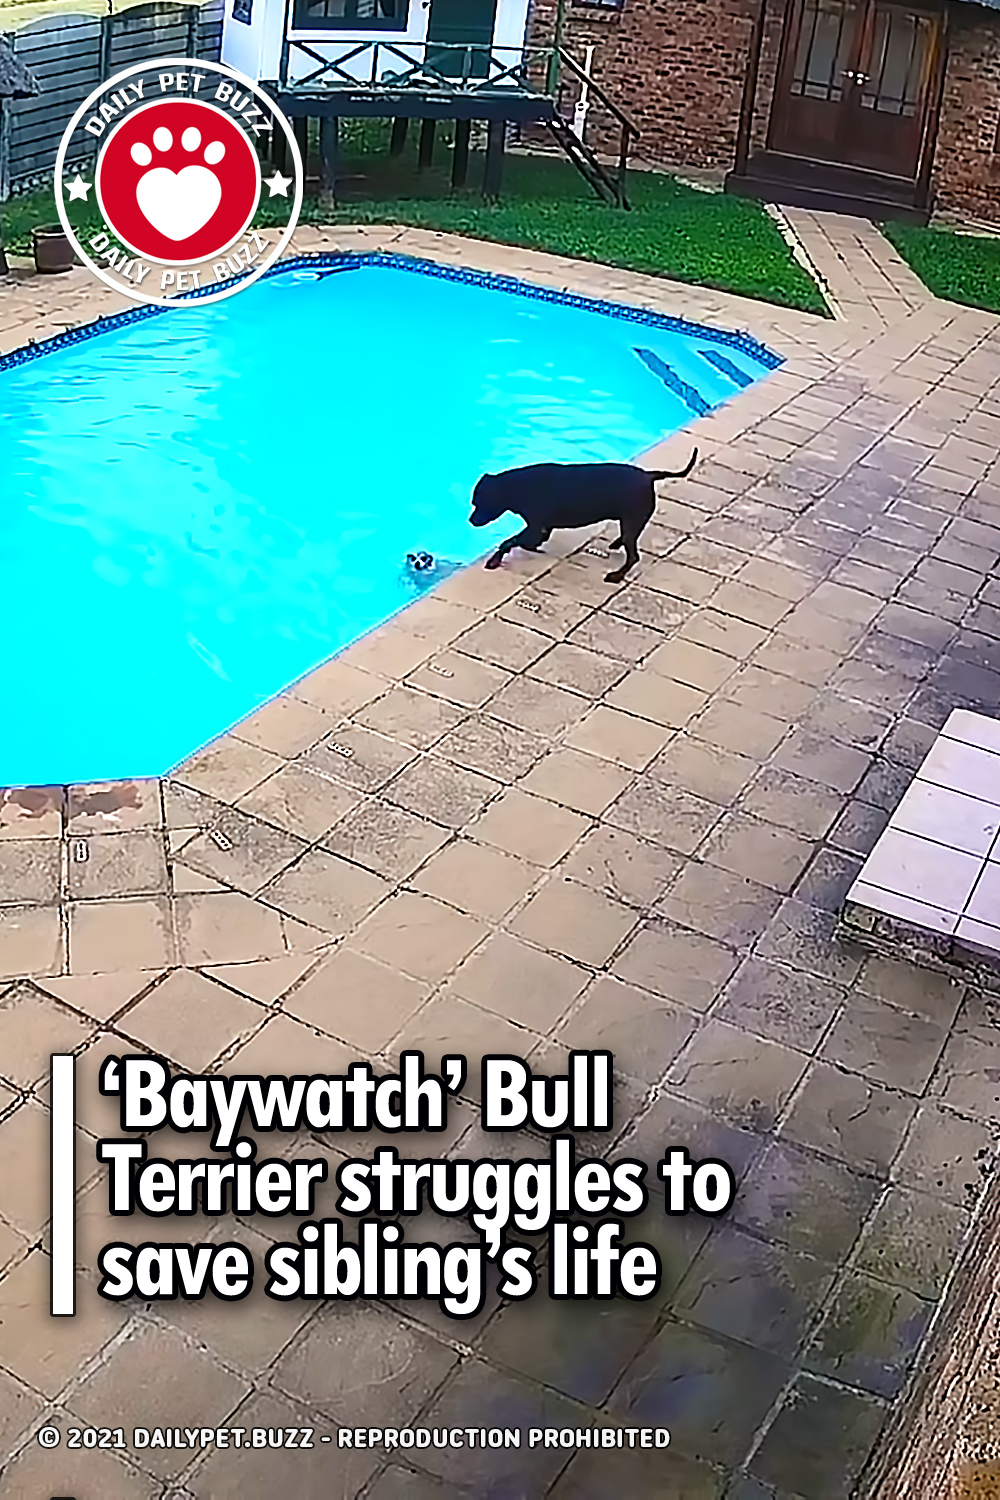 'Baywatch' Bull Terrier struggles to save sibling's life